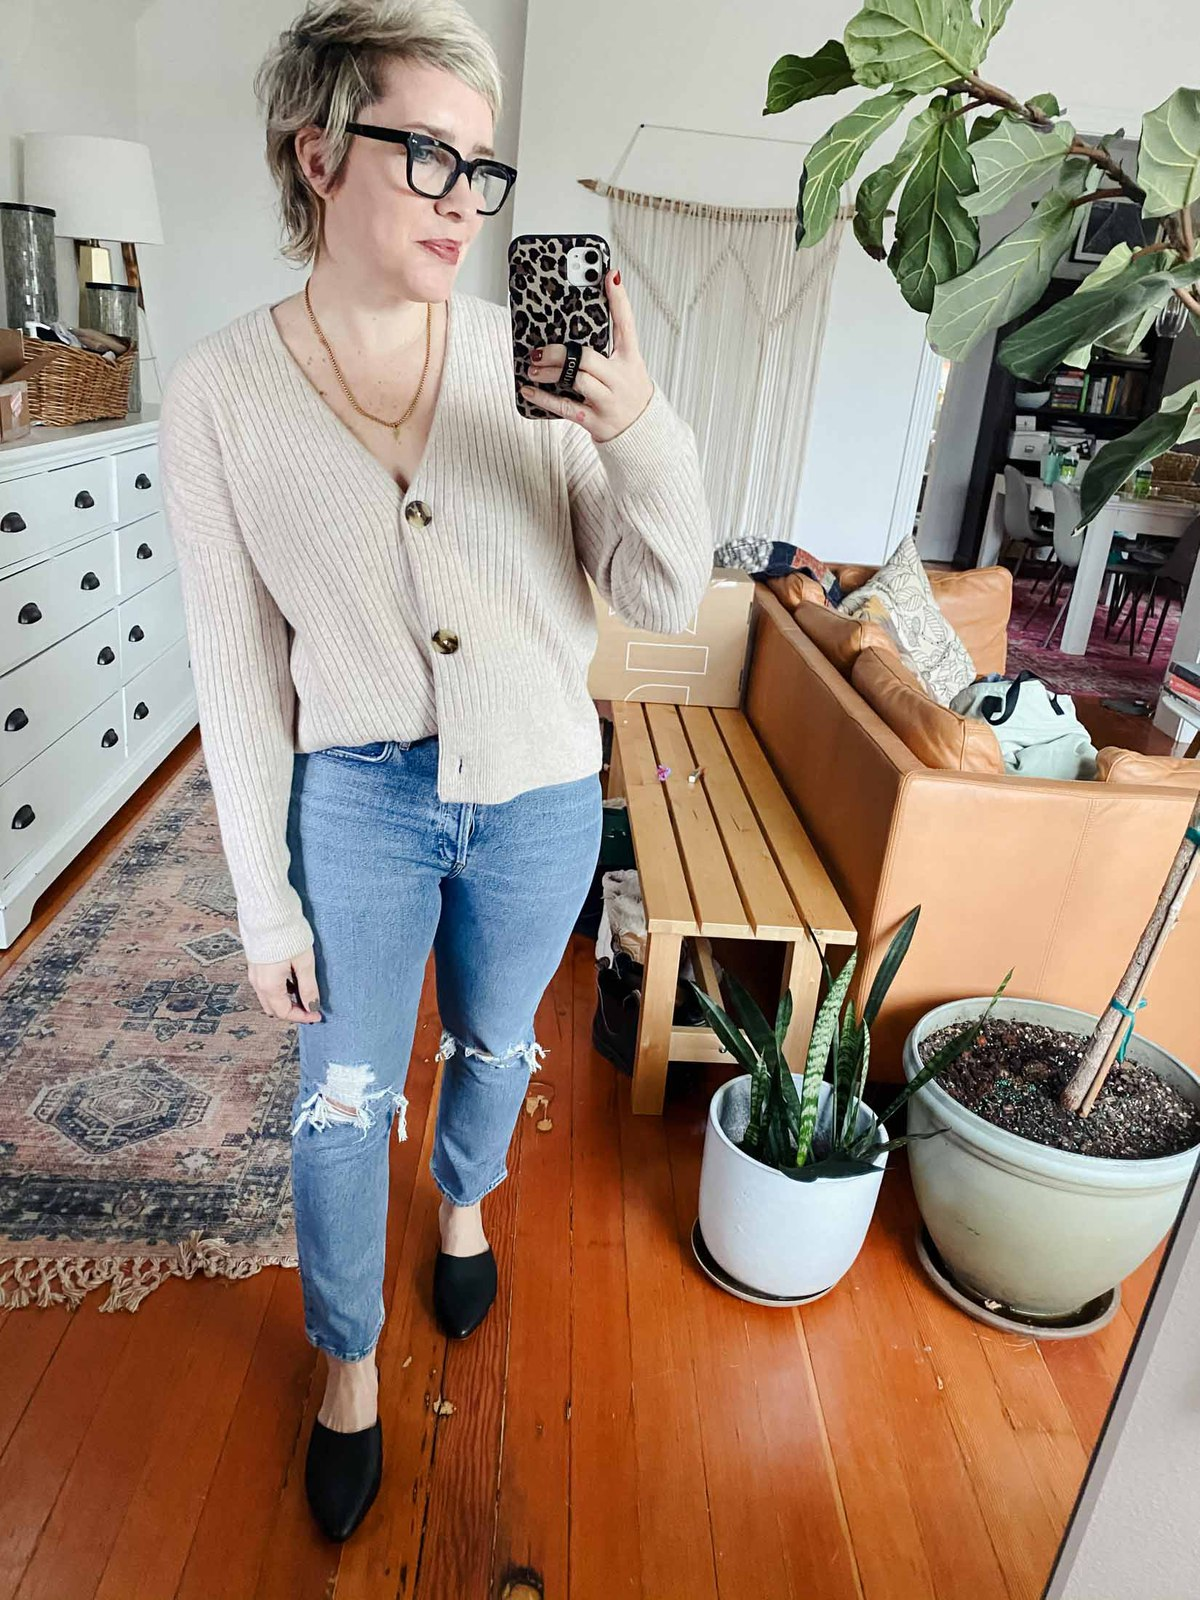 The AGOLDE Riley high waist straight crop jeans are my favorite new denim style, so I thought I'd style 'em up 6 ways! Bonus: they're sustainably made.